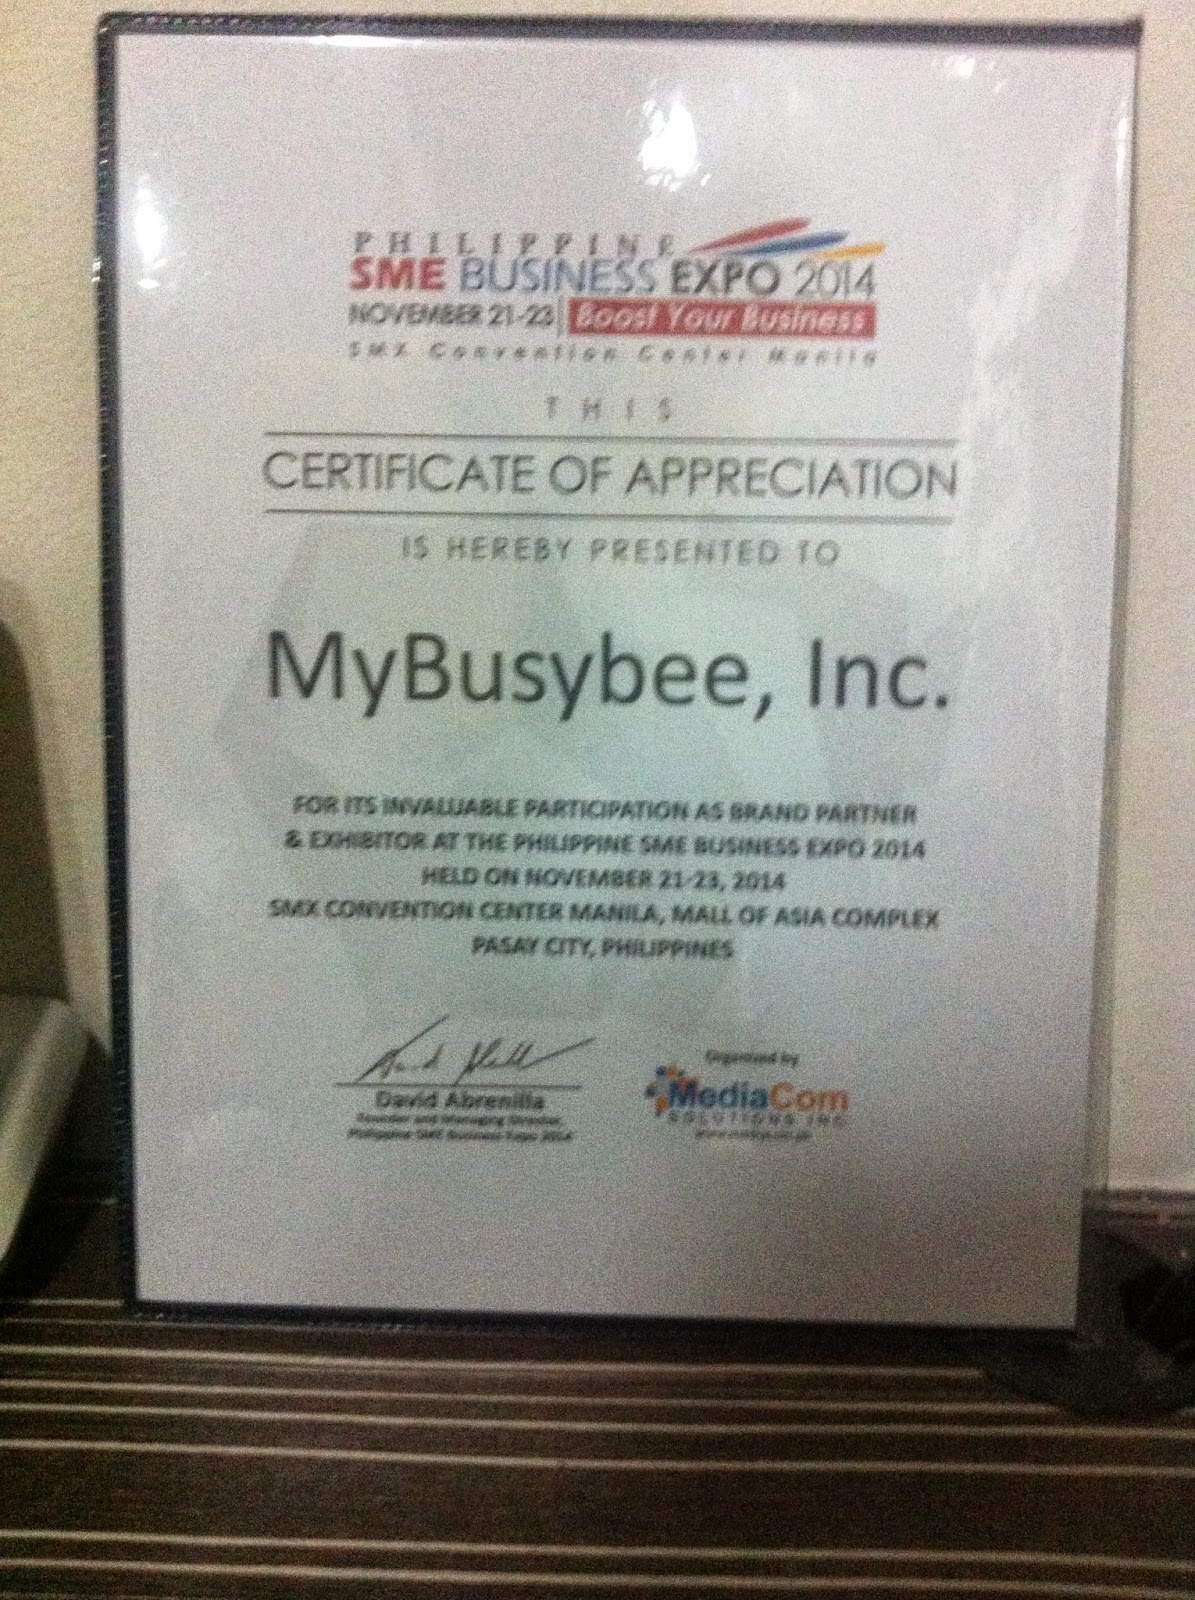 busybee meets SME Business Expo